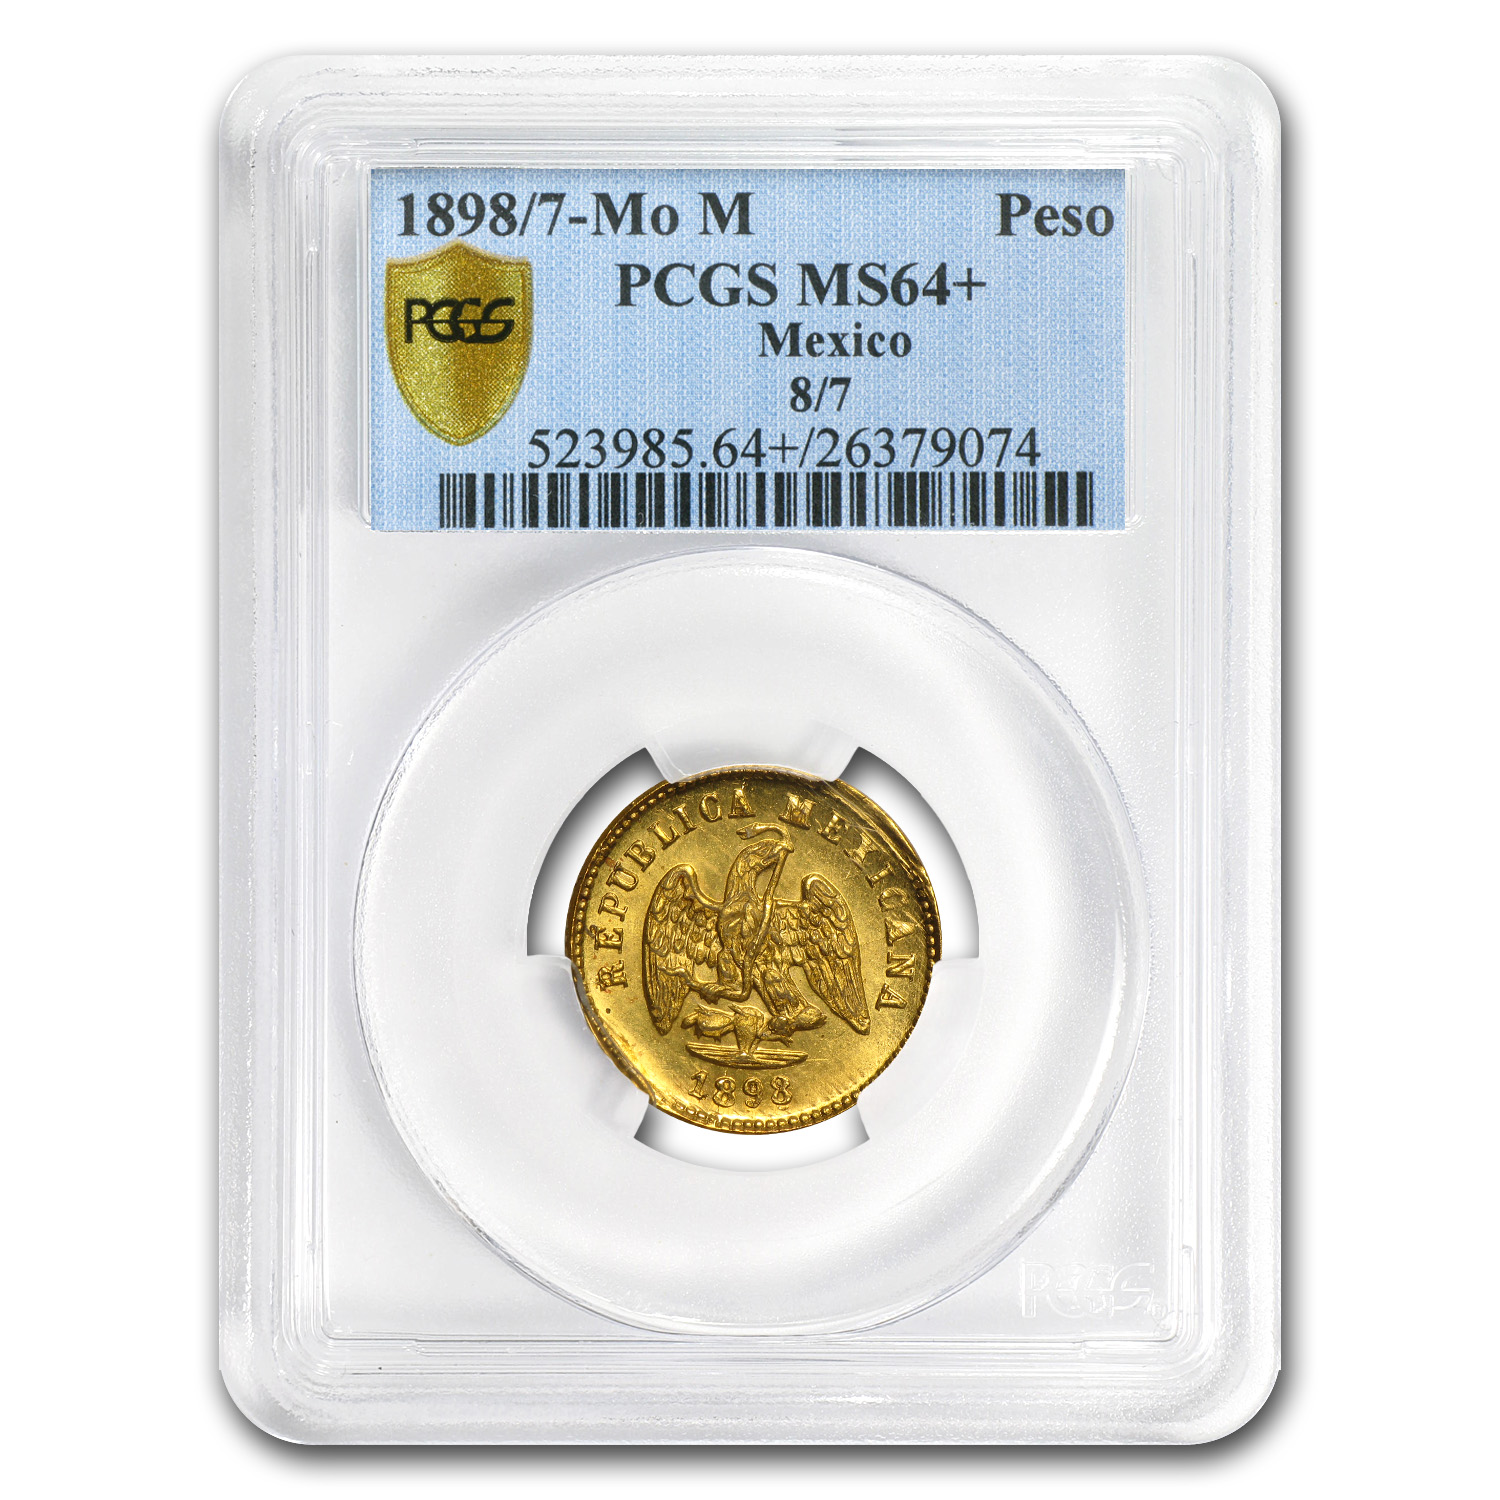 Mexico 1898/7-Mo M 1 Peso Gold Coin - MS-64+ PCGS